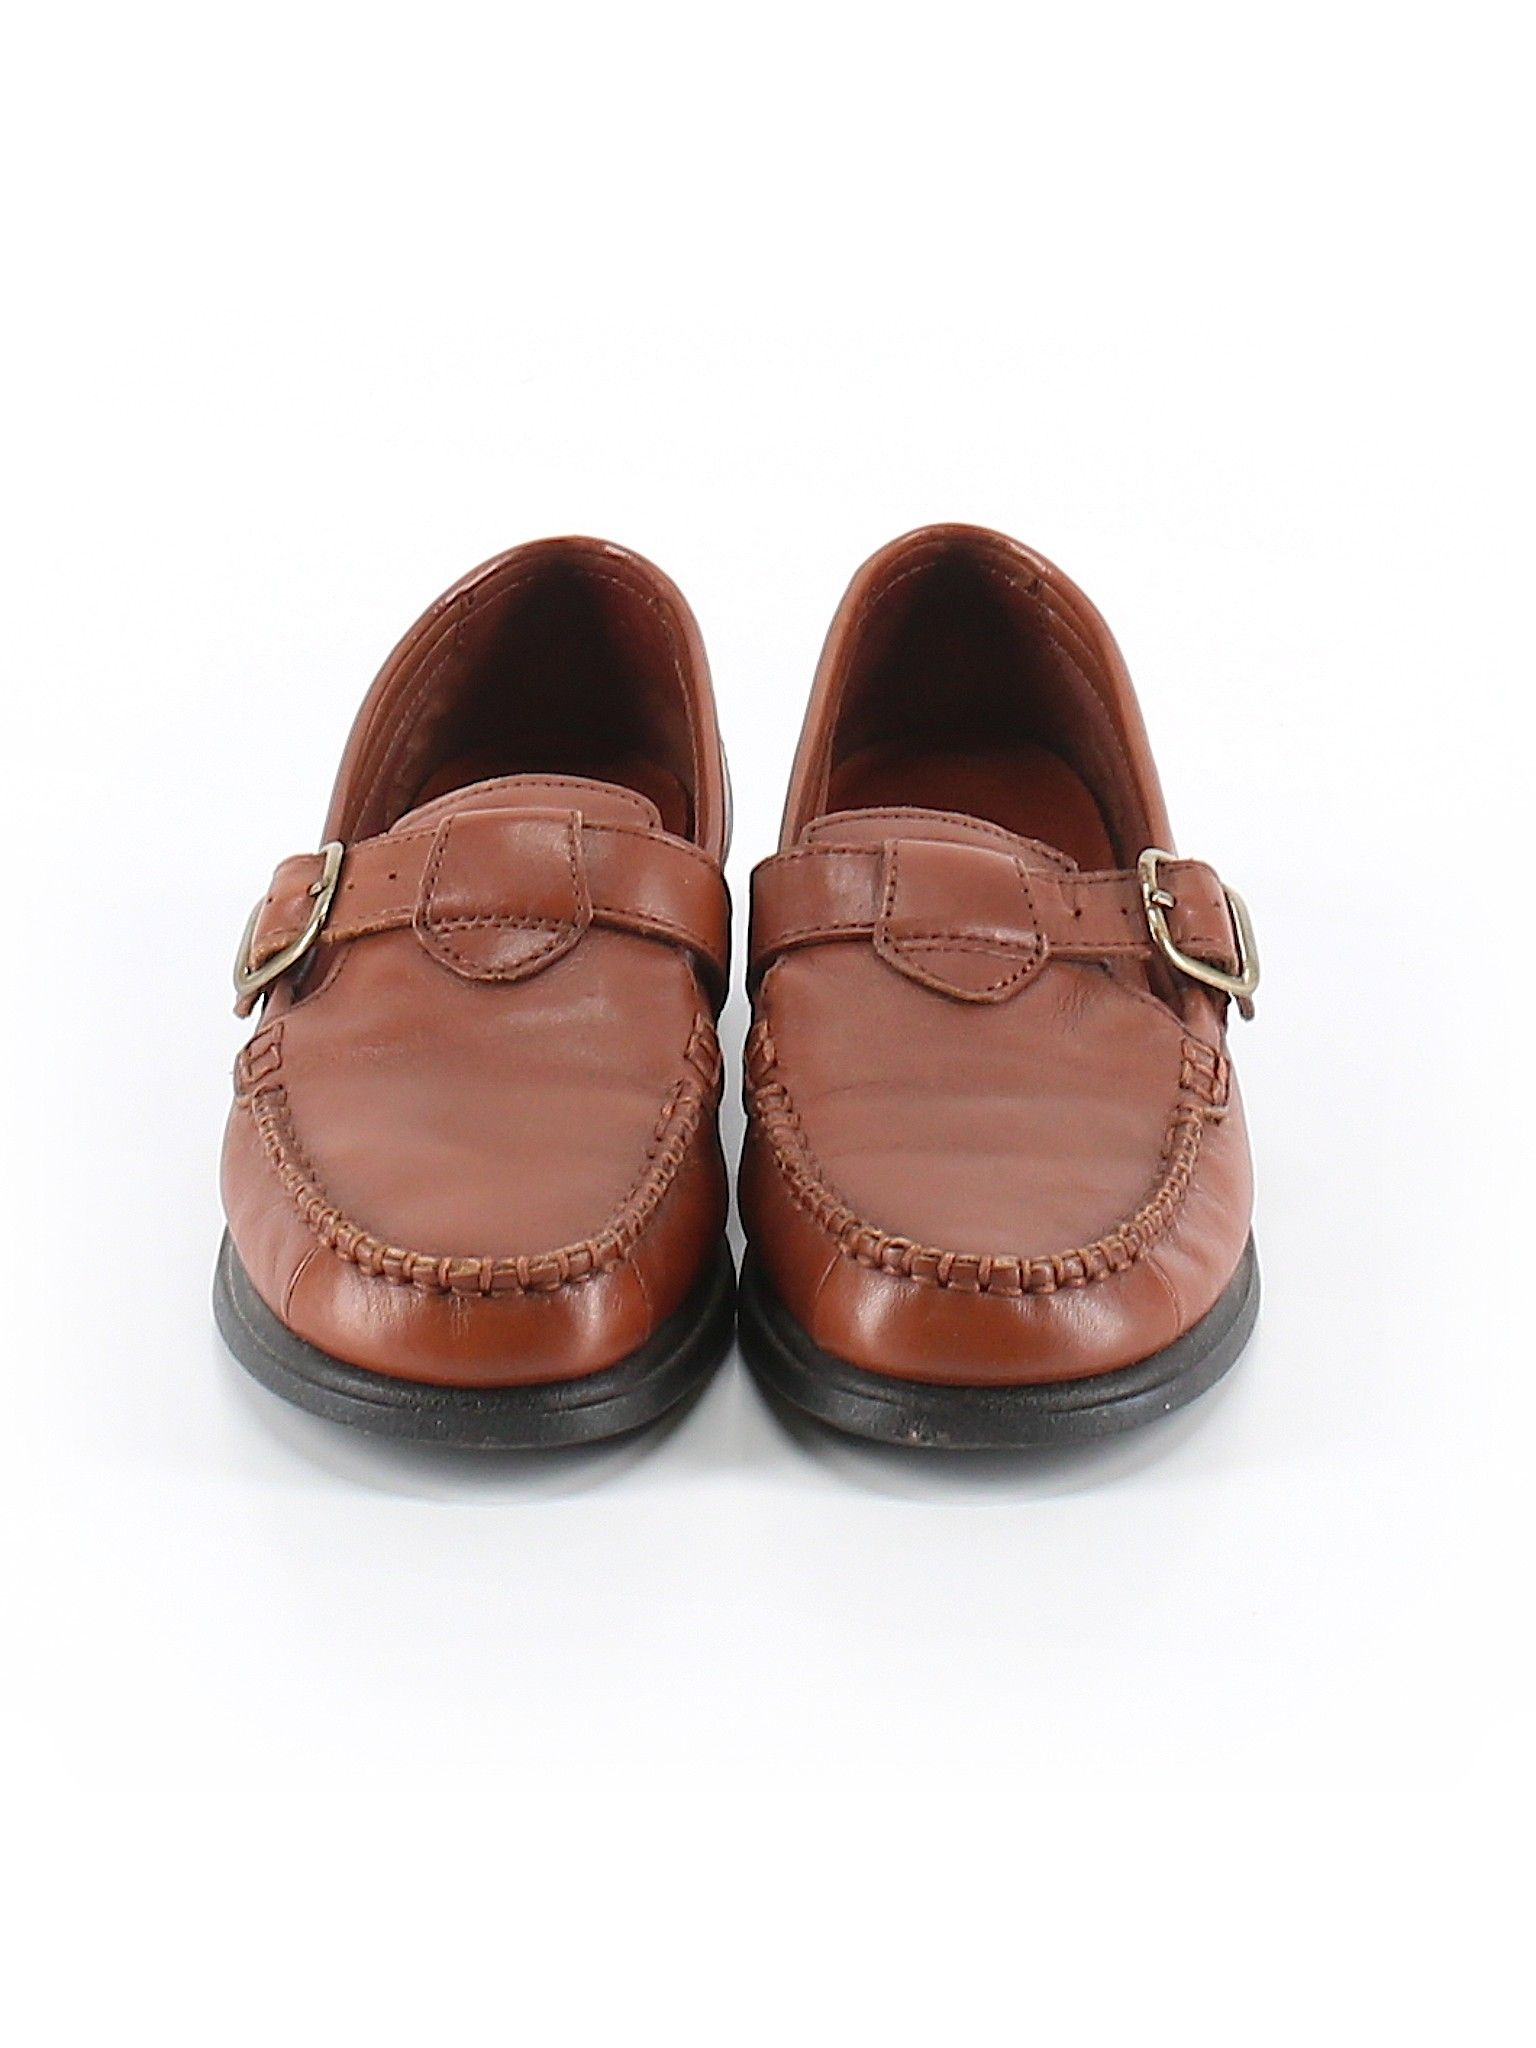 Hush Puppies Flat Brown Solid Women S Shoes Size 6 1 2 Clearance Shoes Shoes Boat Shoes